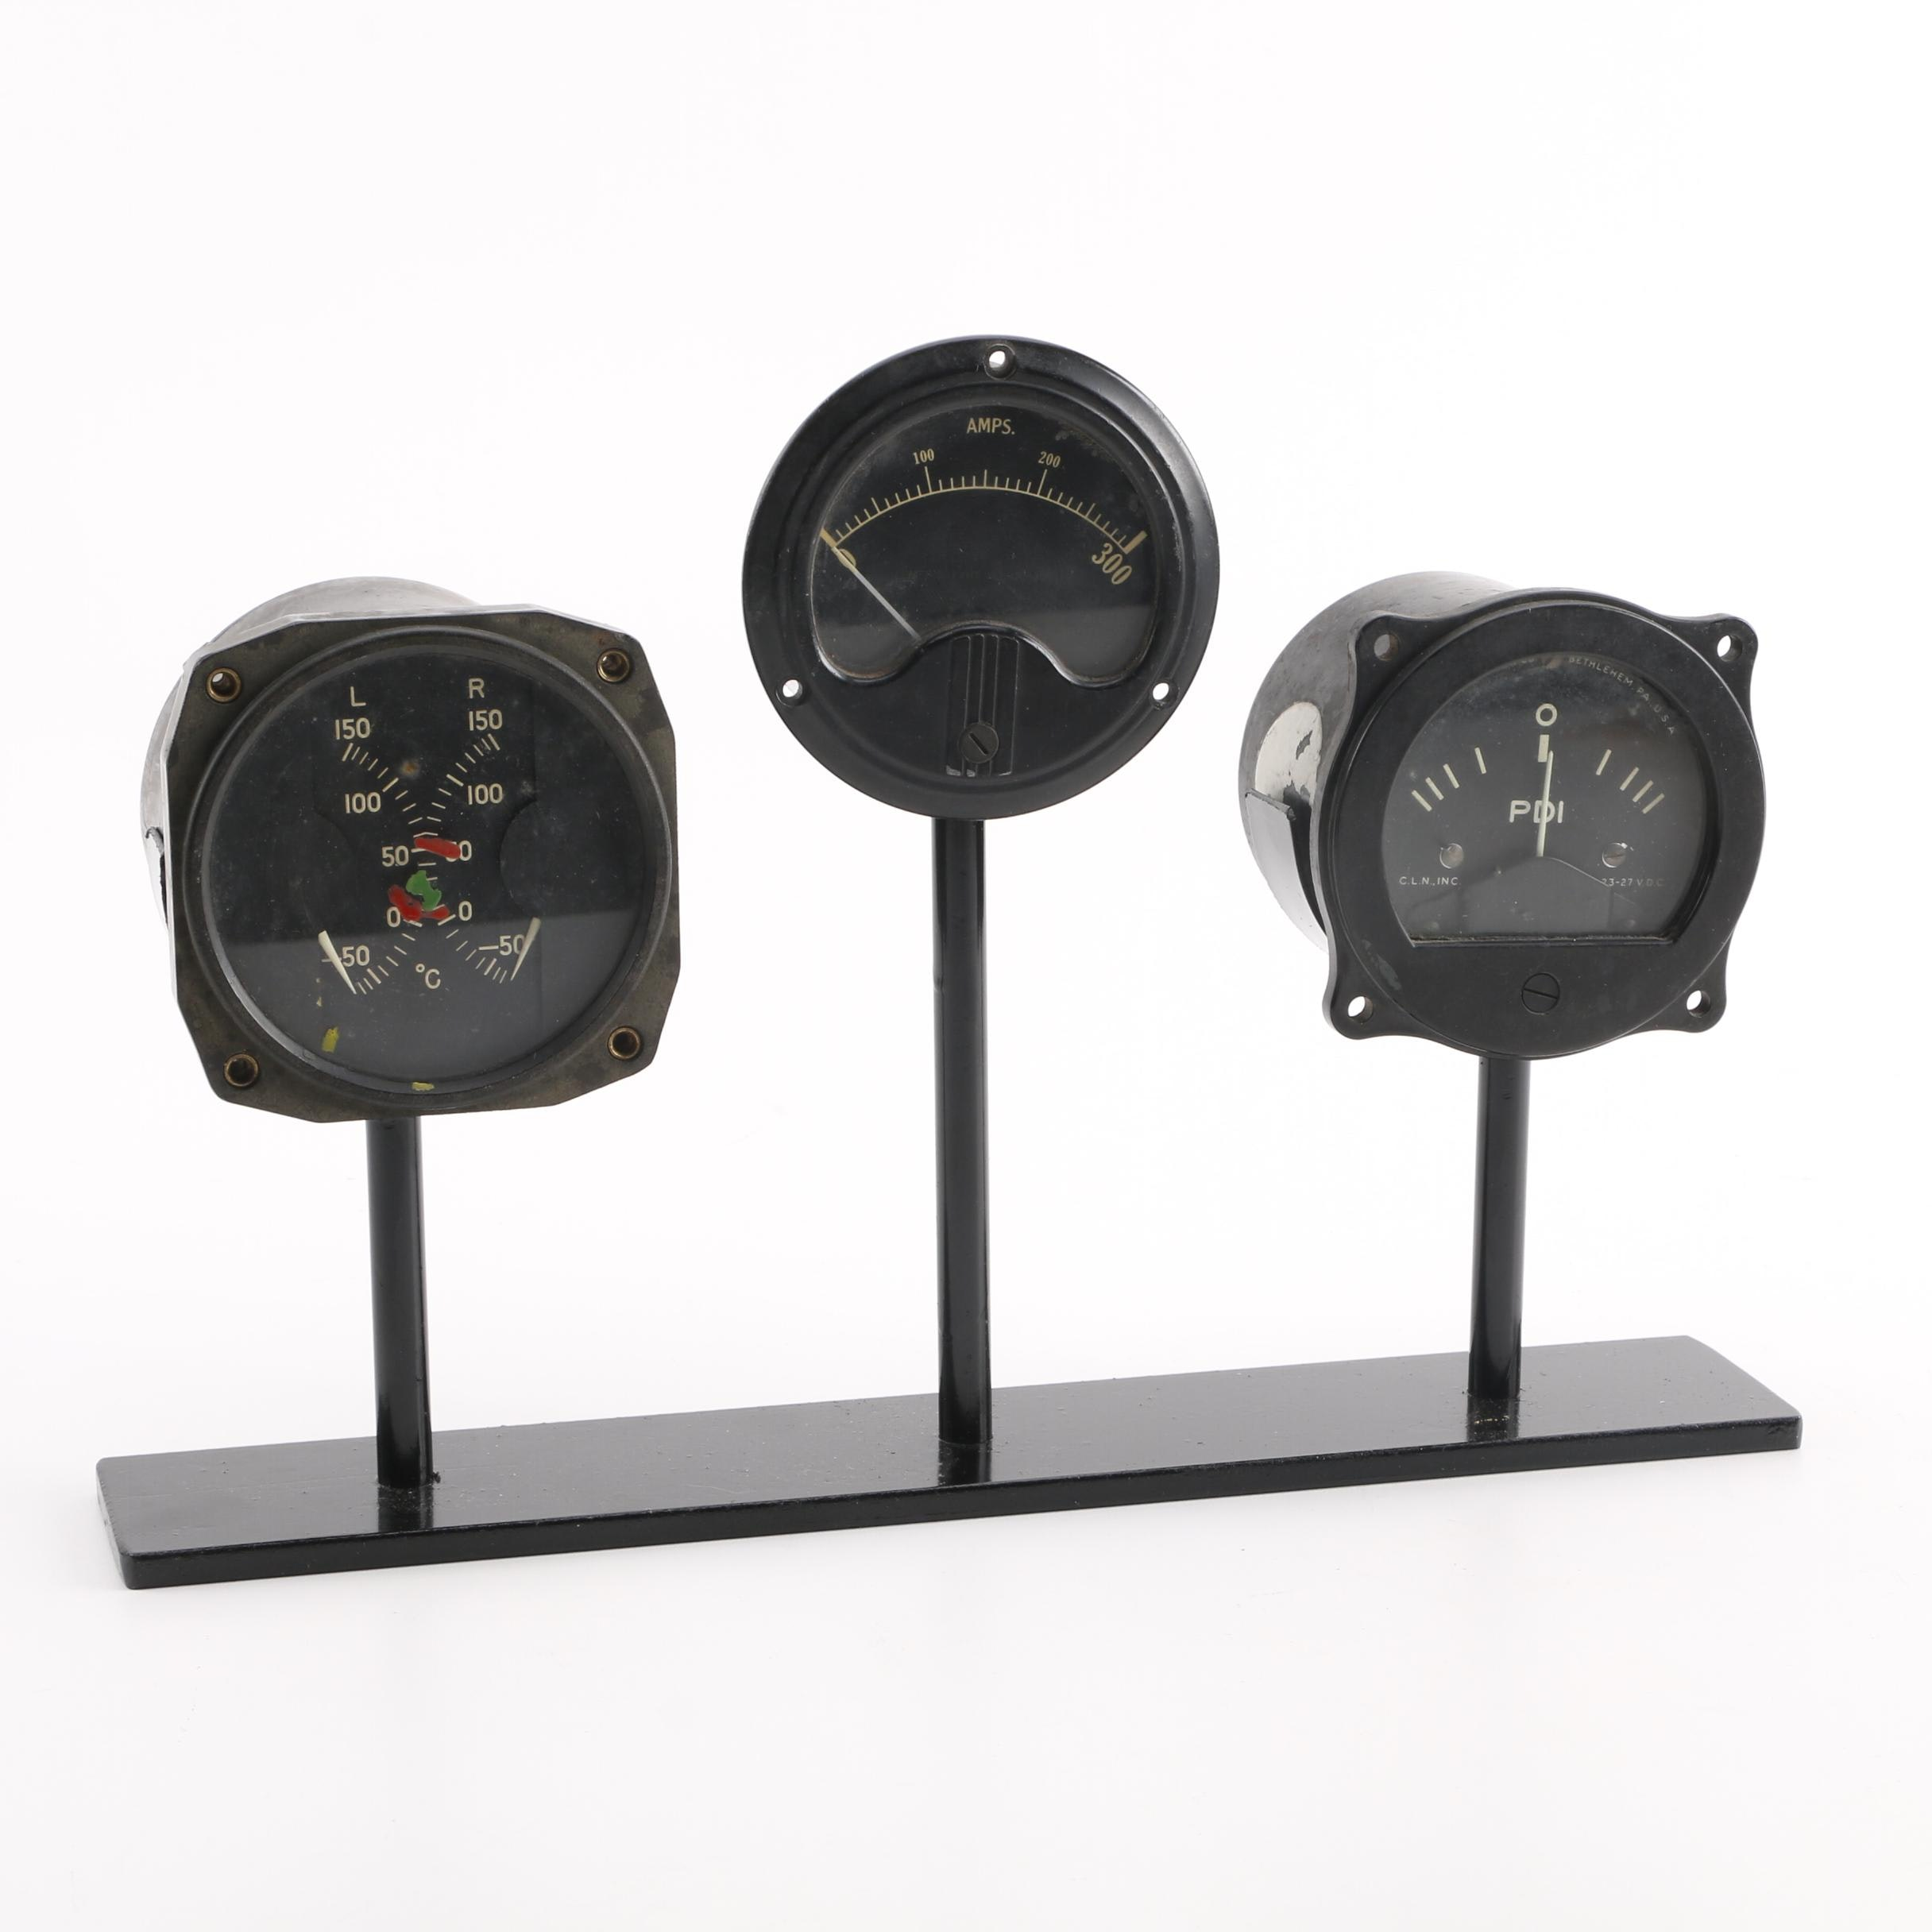 WWII Era B-17 Flying Fortress and B-24 Liberator Cockpit Instrument Gauges